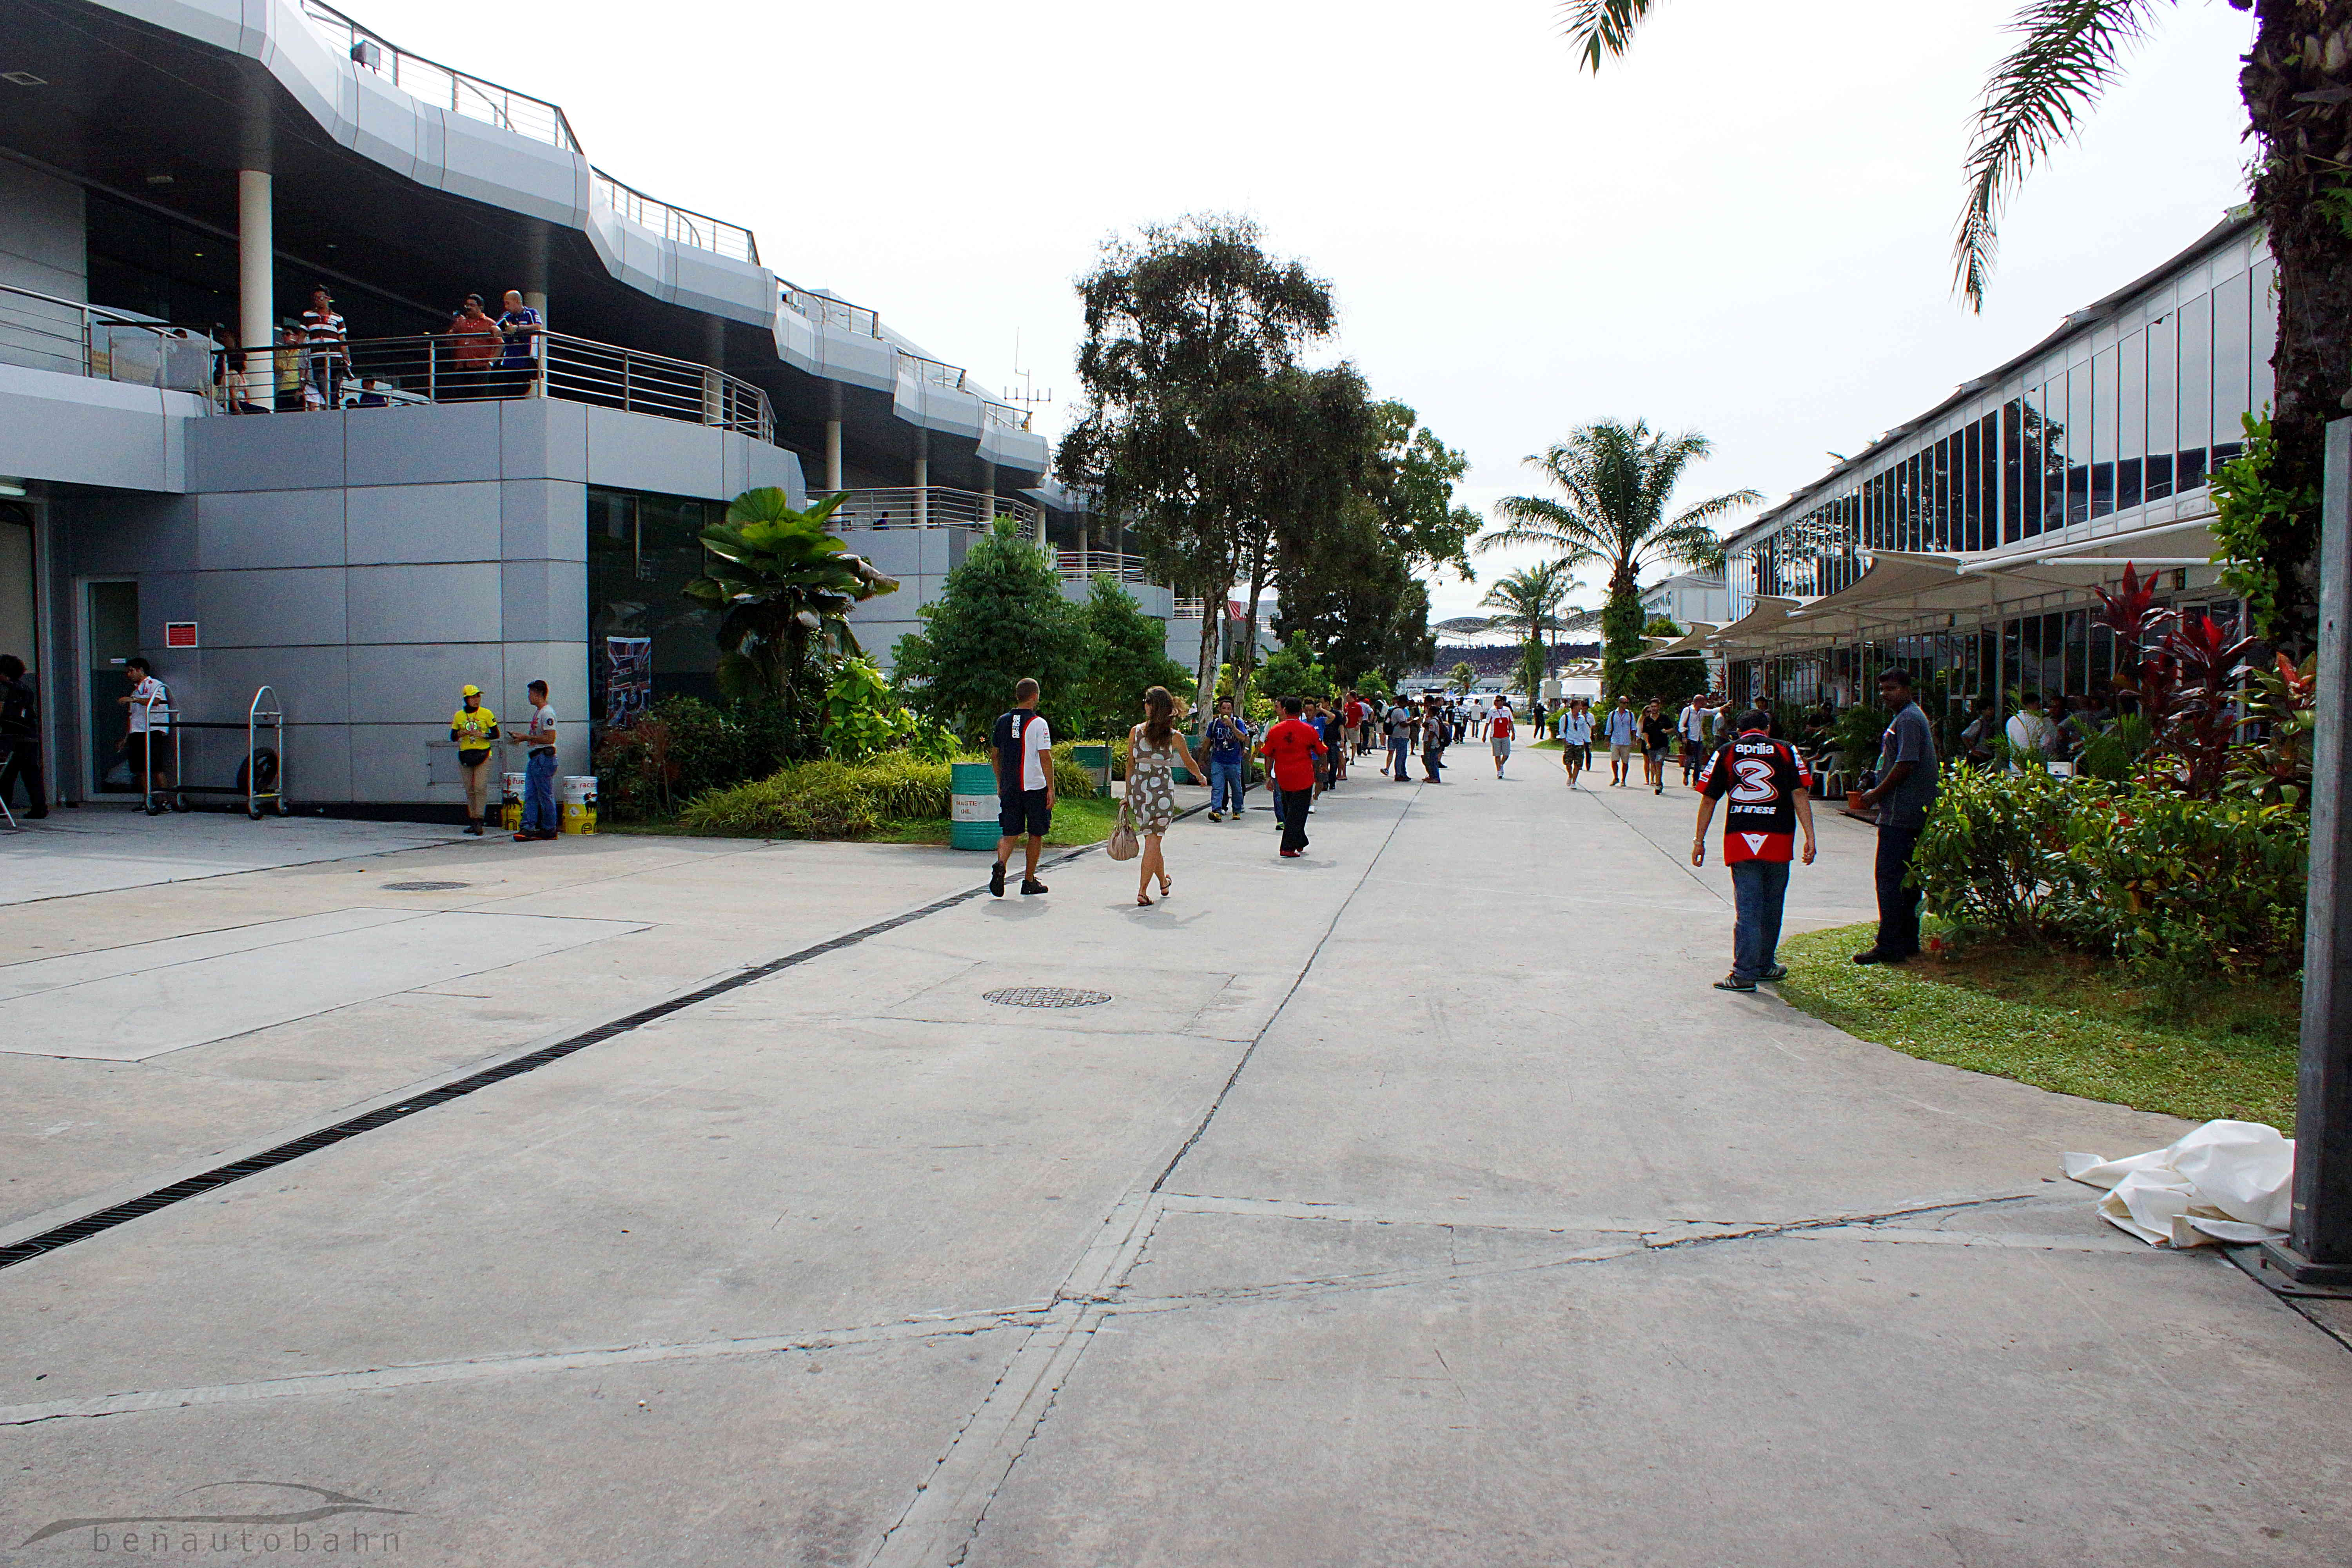 Pit garages on the left, and hospitality areas on the right.